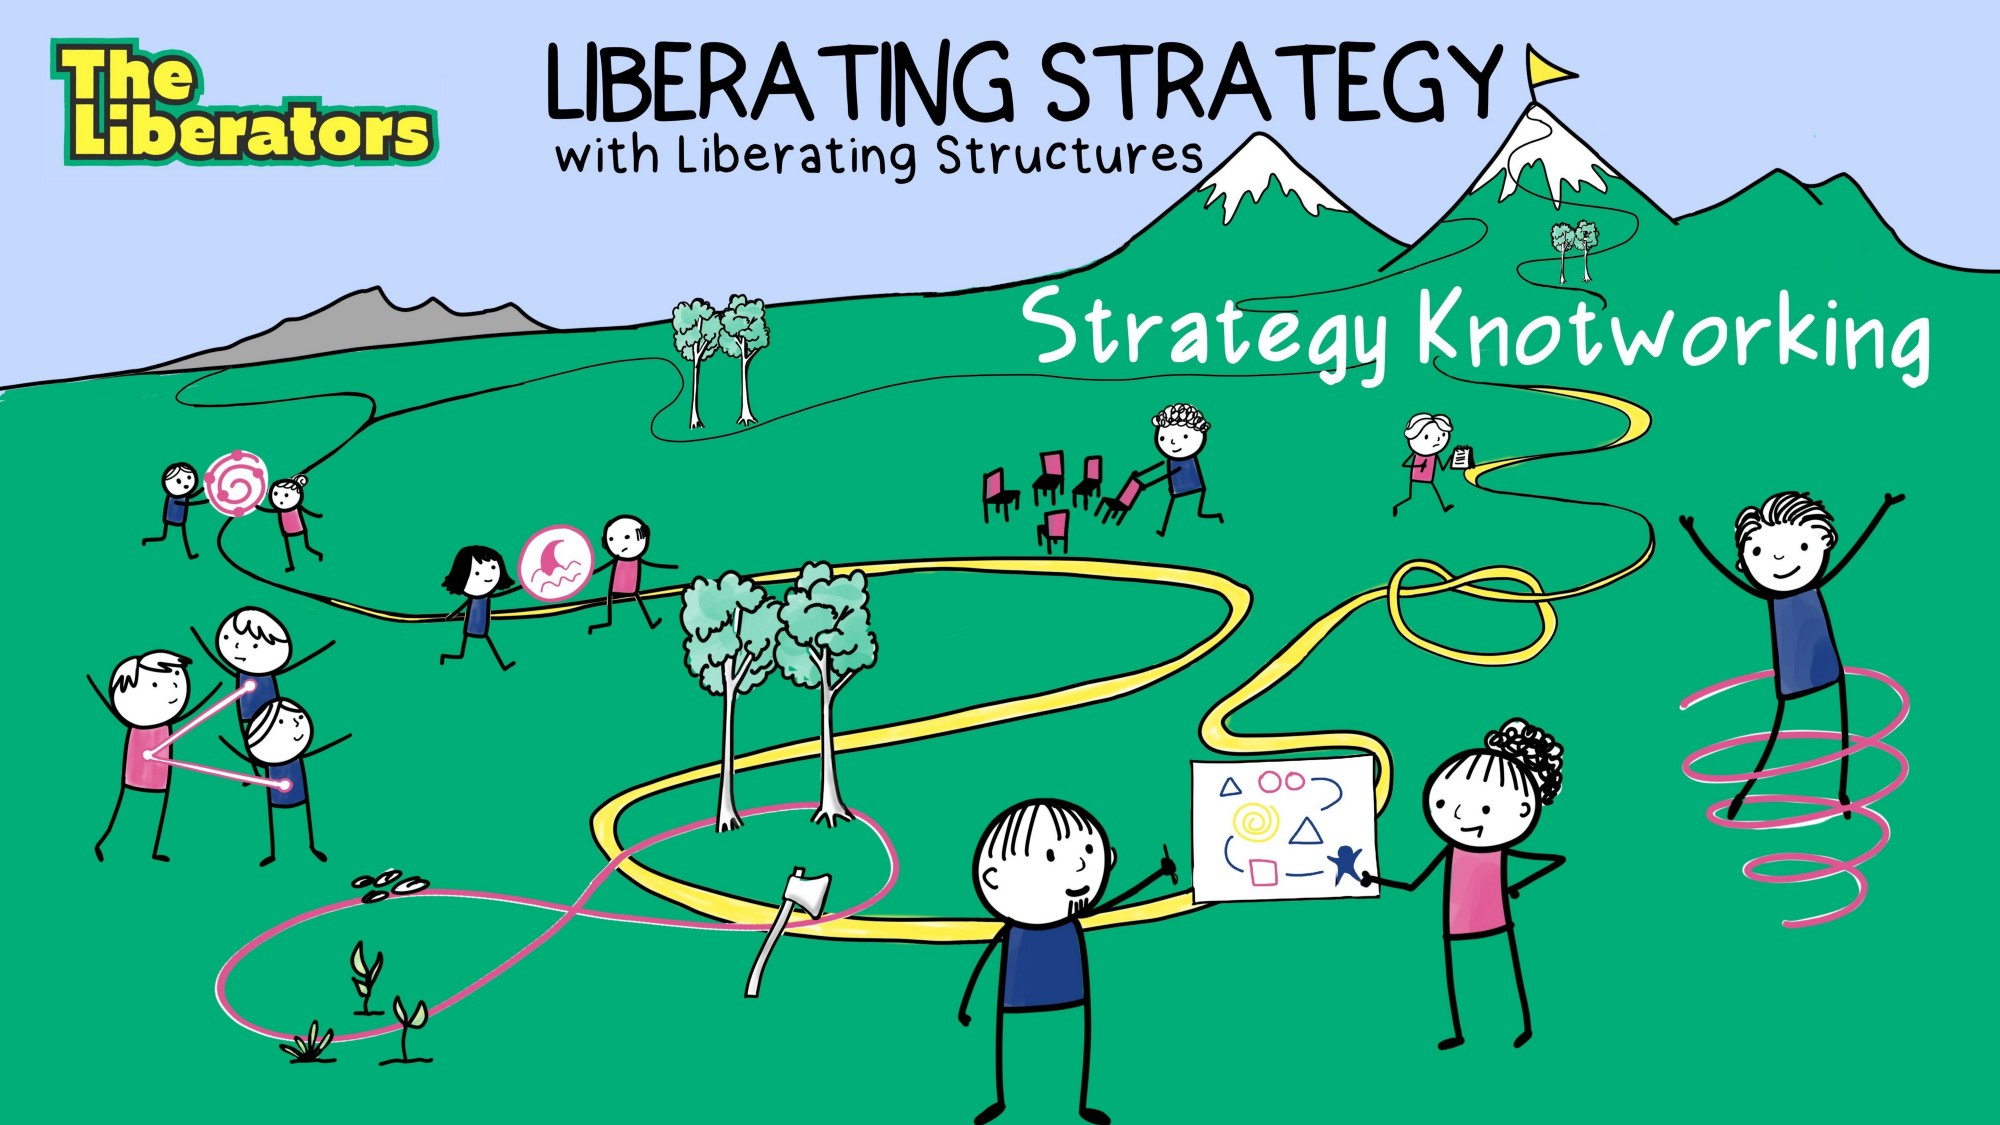 Strategy Not Working: turning ideas and ambitions into reality